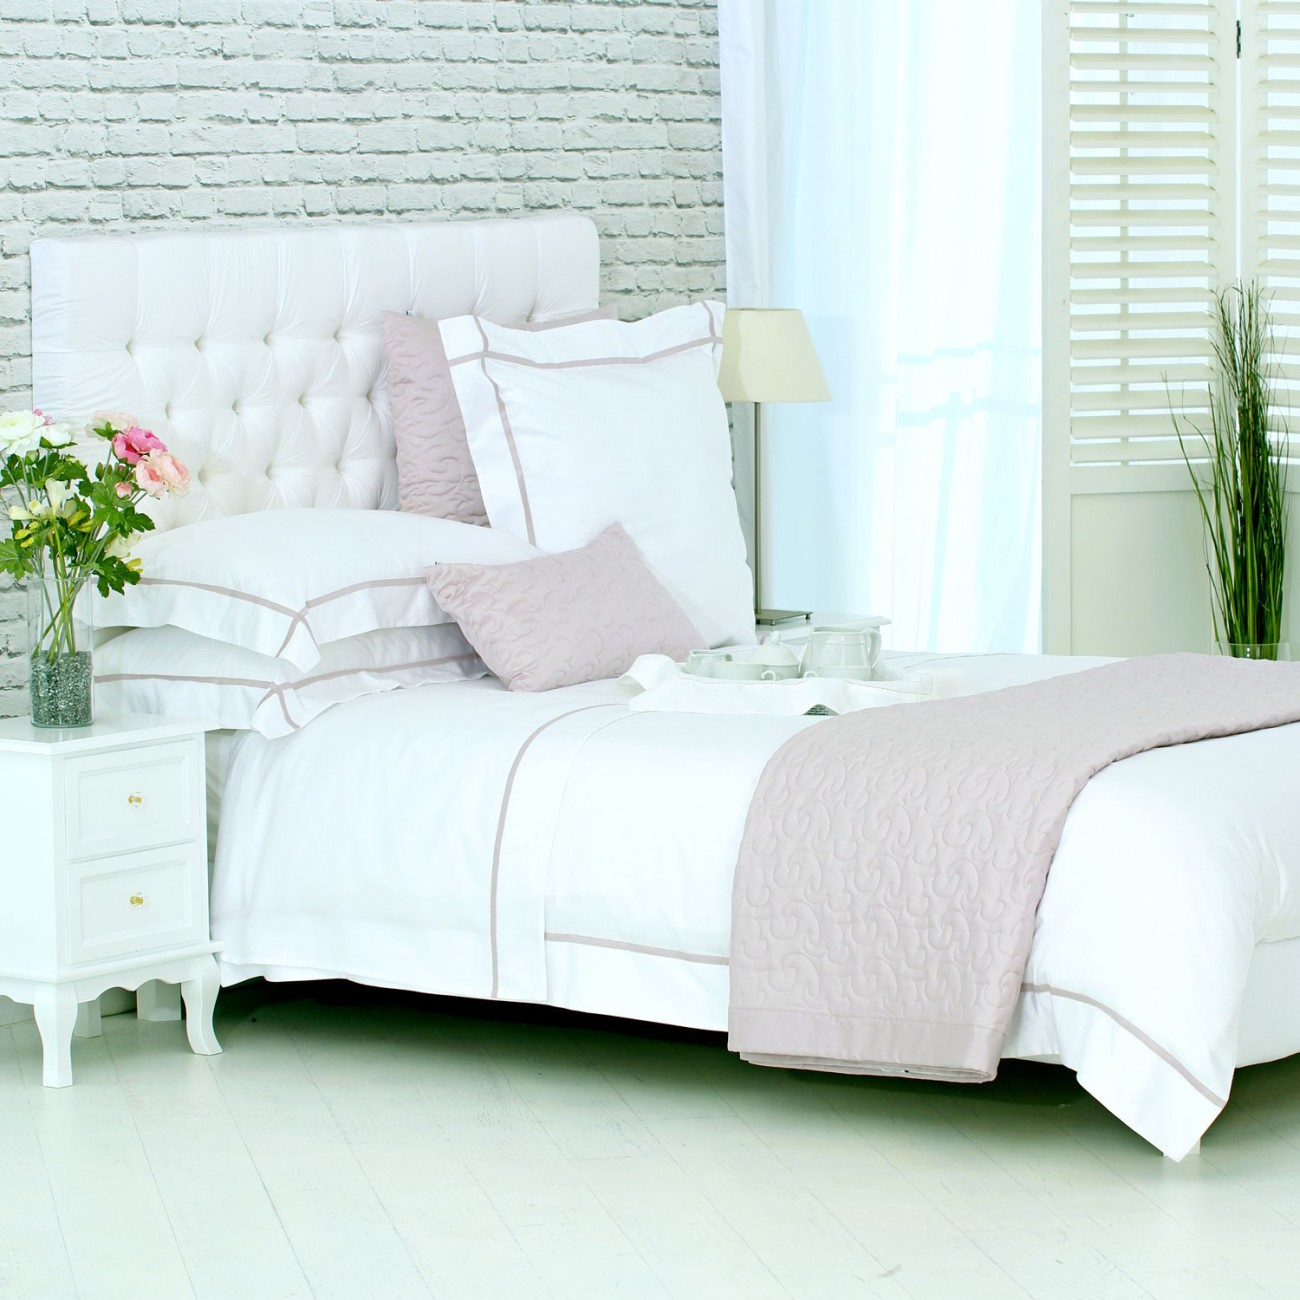 Fairfly Bed Linen Collection